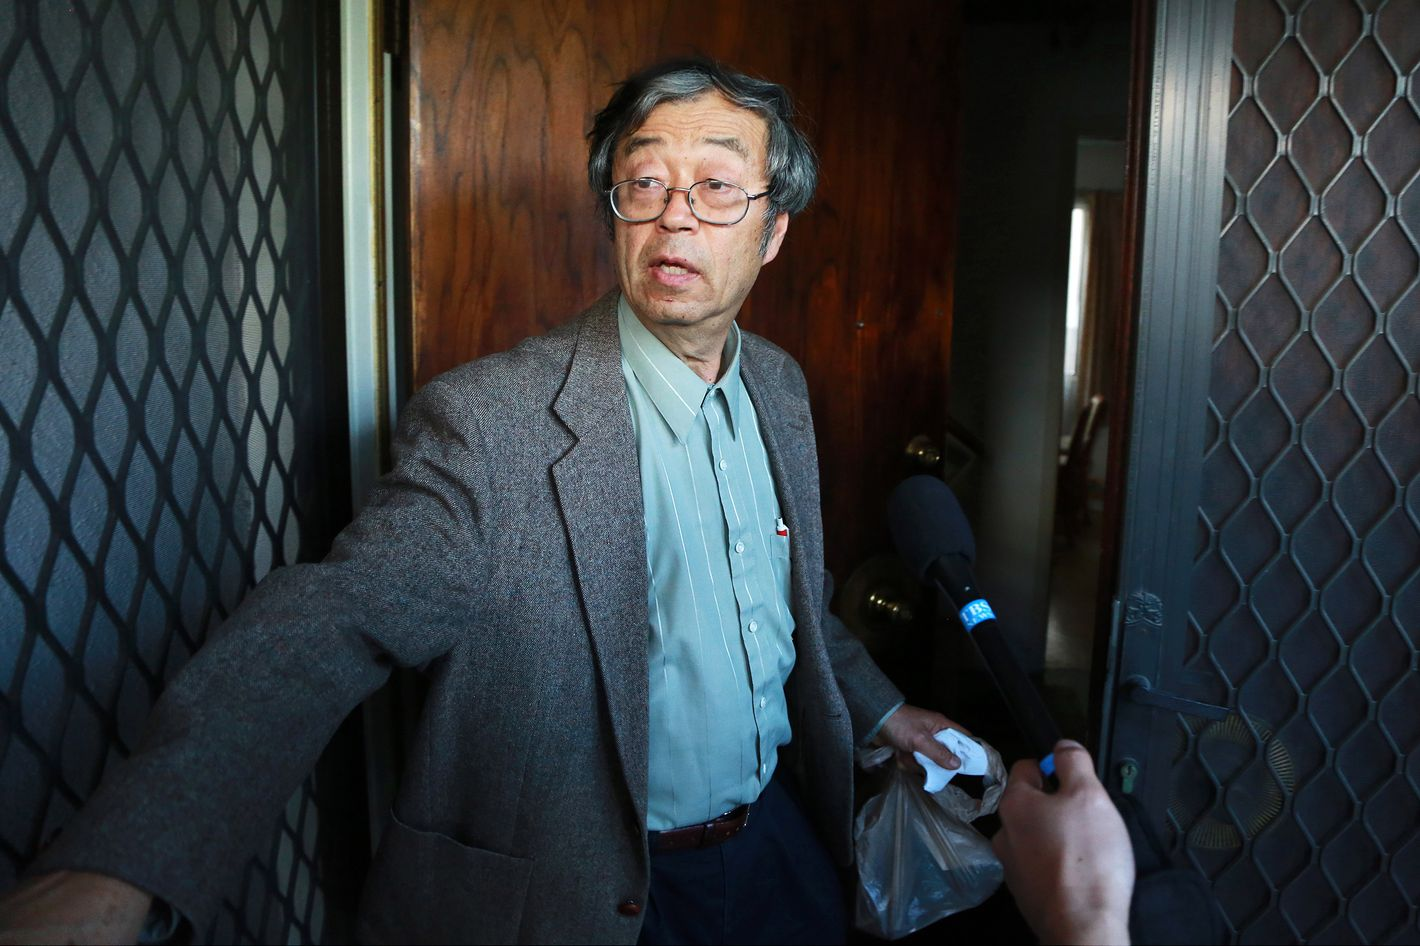 Dorian S. Nakamoto, identified by Newsweek magazine as the founder of Bitcoin, stands surrounded by members of the media as he arrives home in Temple City, California, U.S., on Thursday, March 6, 2014. Nakamoto, a 64-year-old physicist, denied involvement in the digital currency before leading reporters on a multi-vehicle car chase and entering an Associated Press bureau.